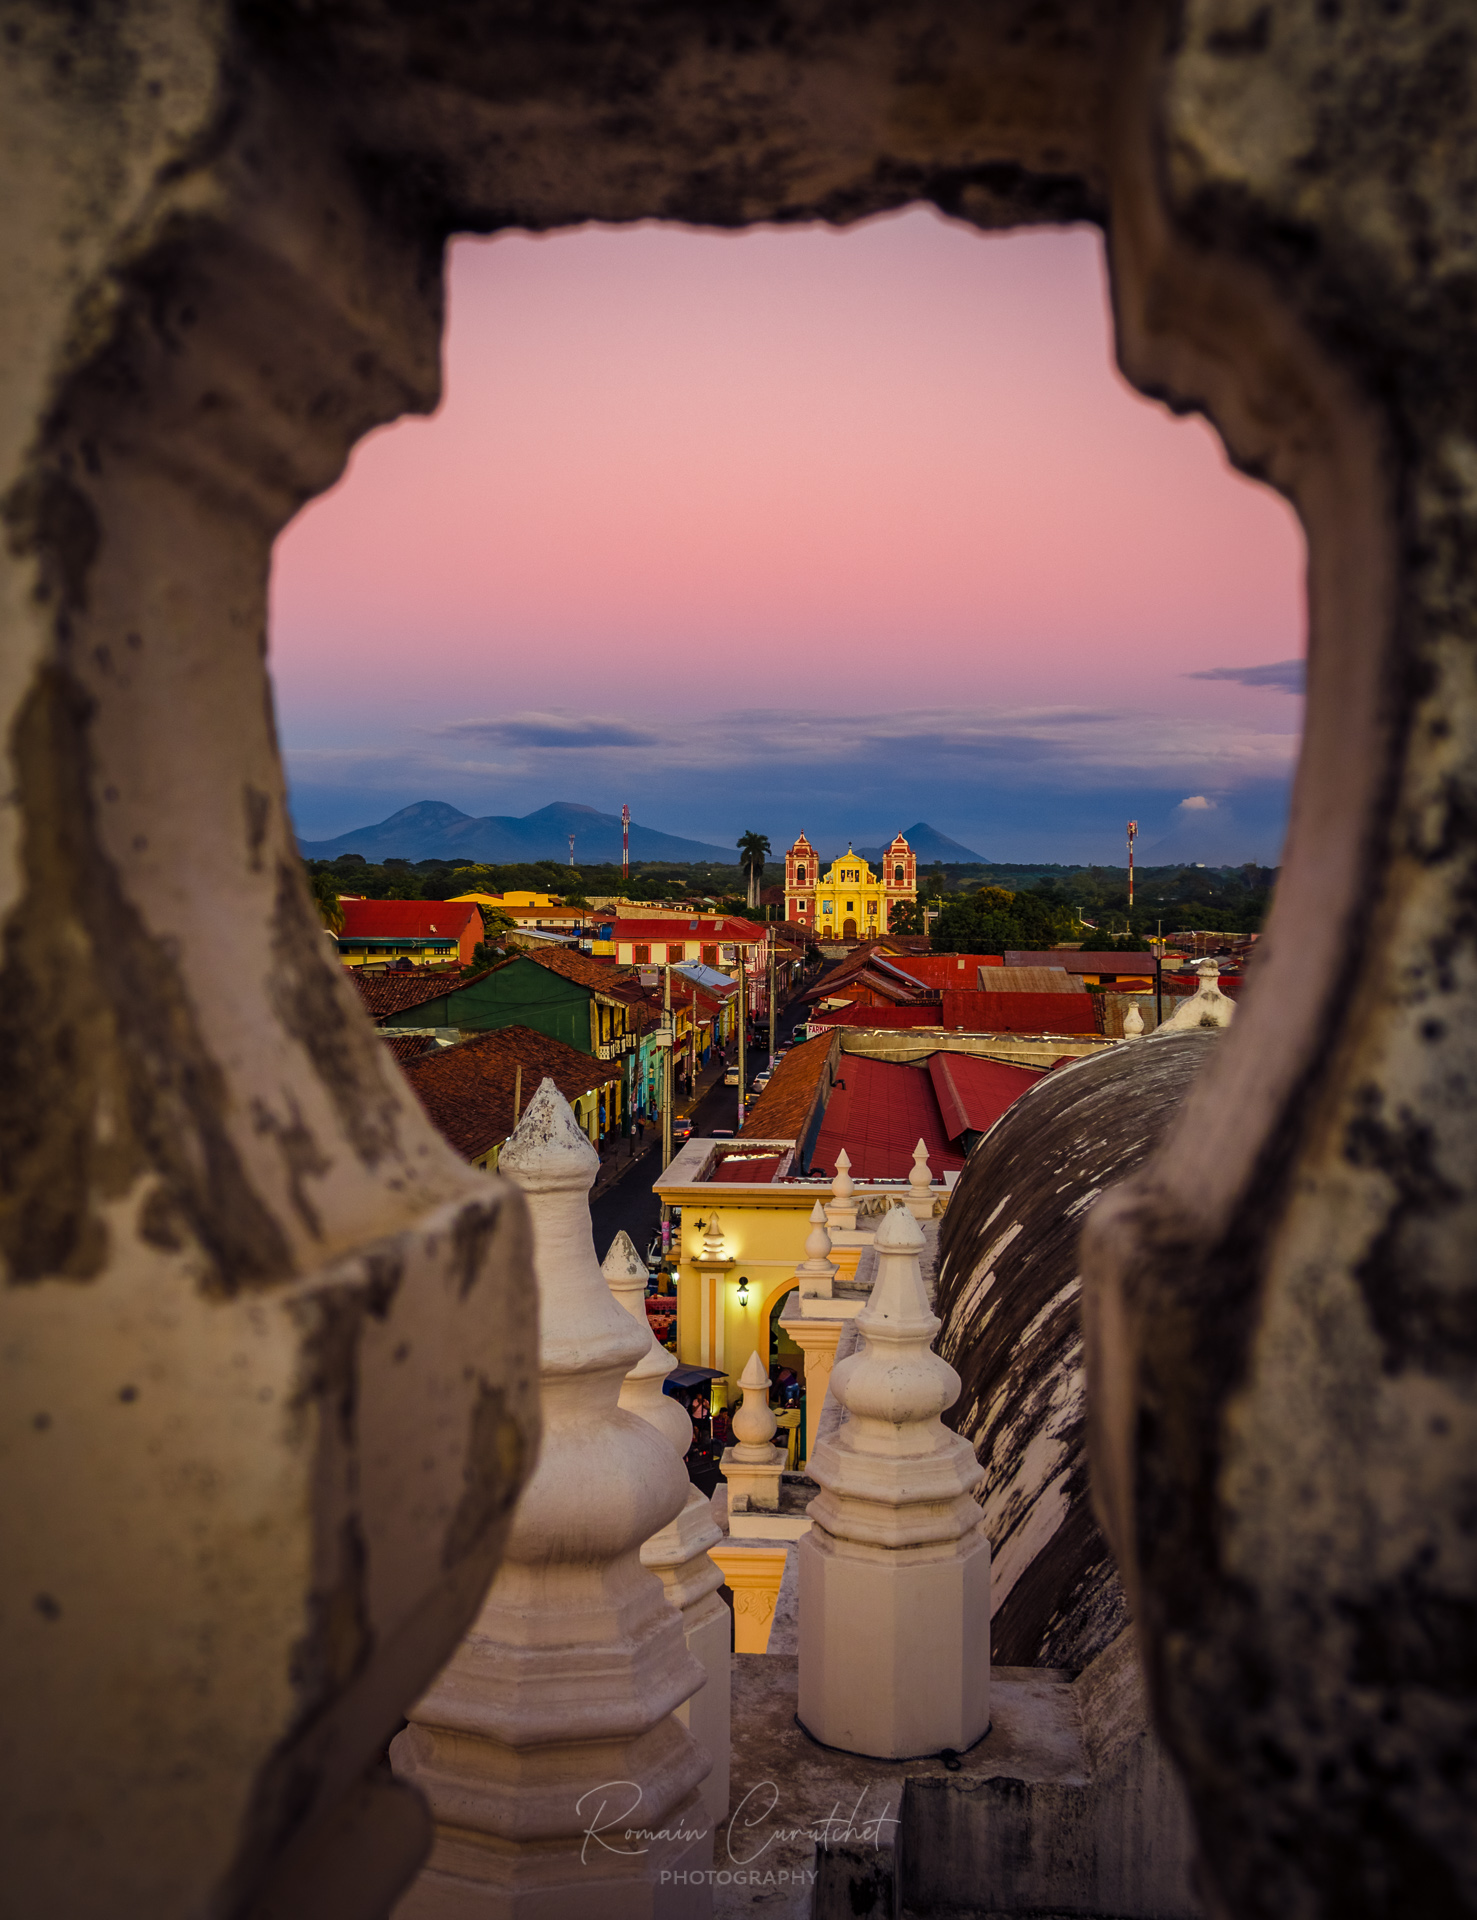 Iglesia El Calvario seen from the rooftop of the Leon Cathedral, Nicaragua © Romain Curutchet